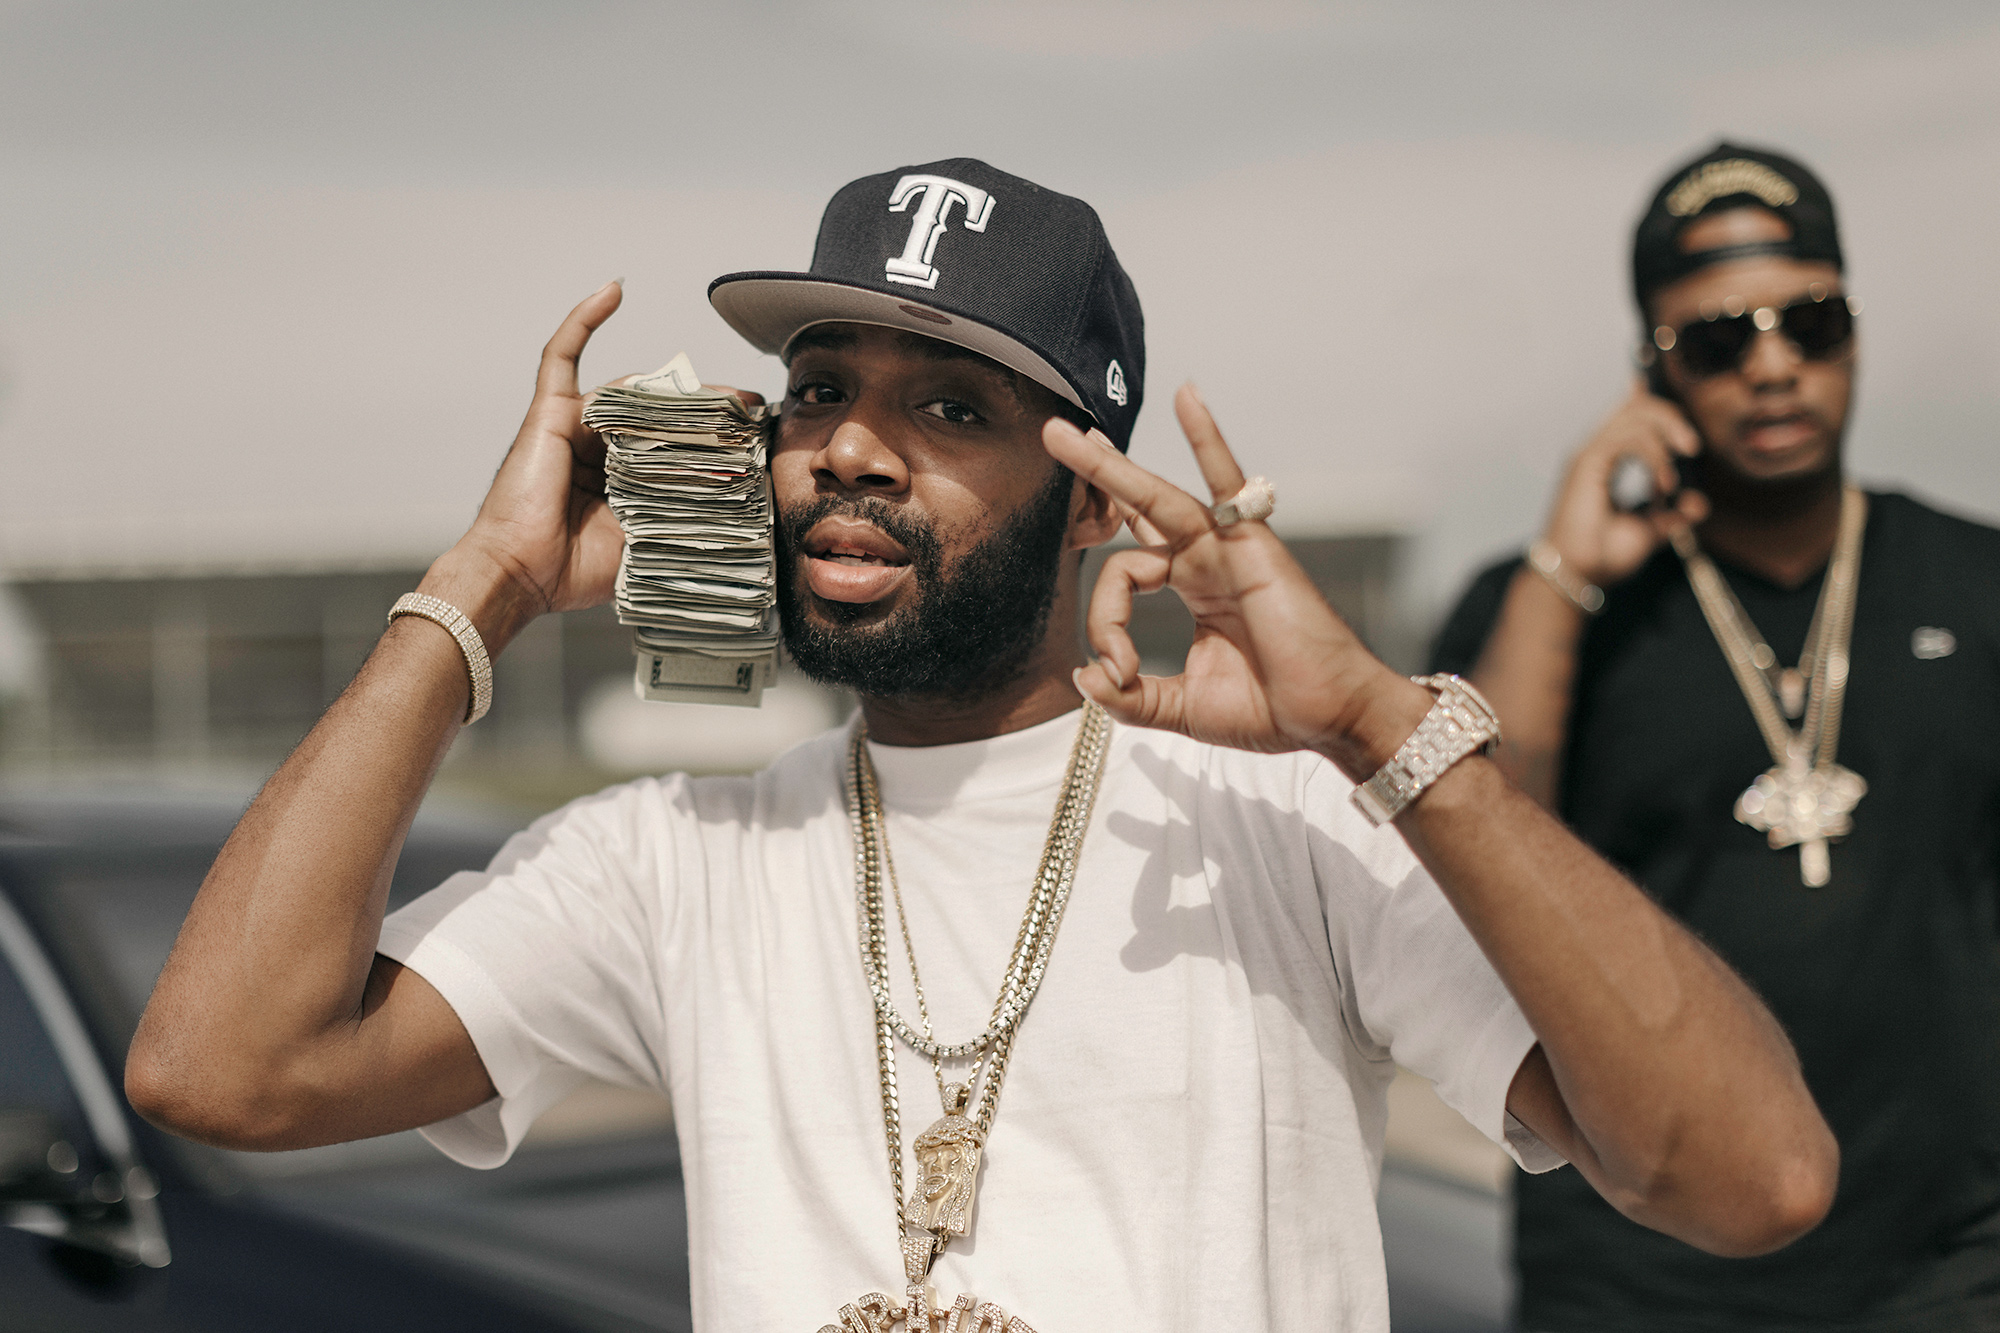 J Prince Jr. holds up a stack of money on the set of a music video in Houston, Texas, photographed by music photographer Todd Spoth.